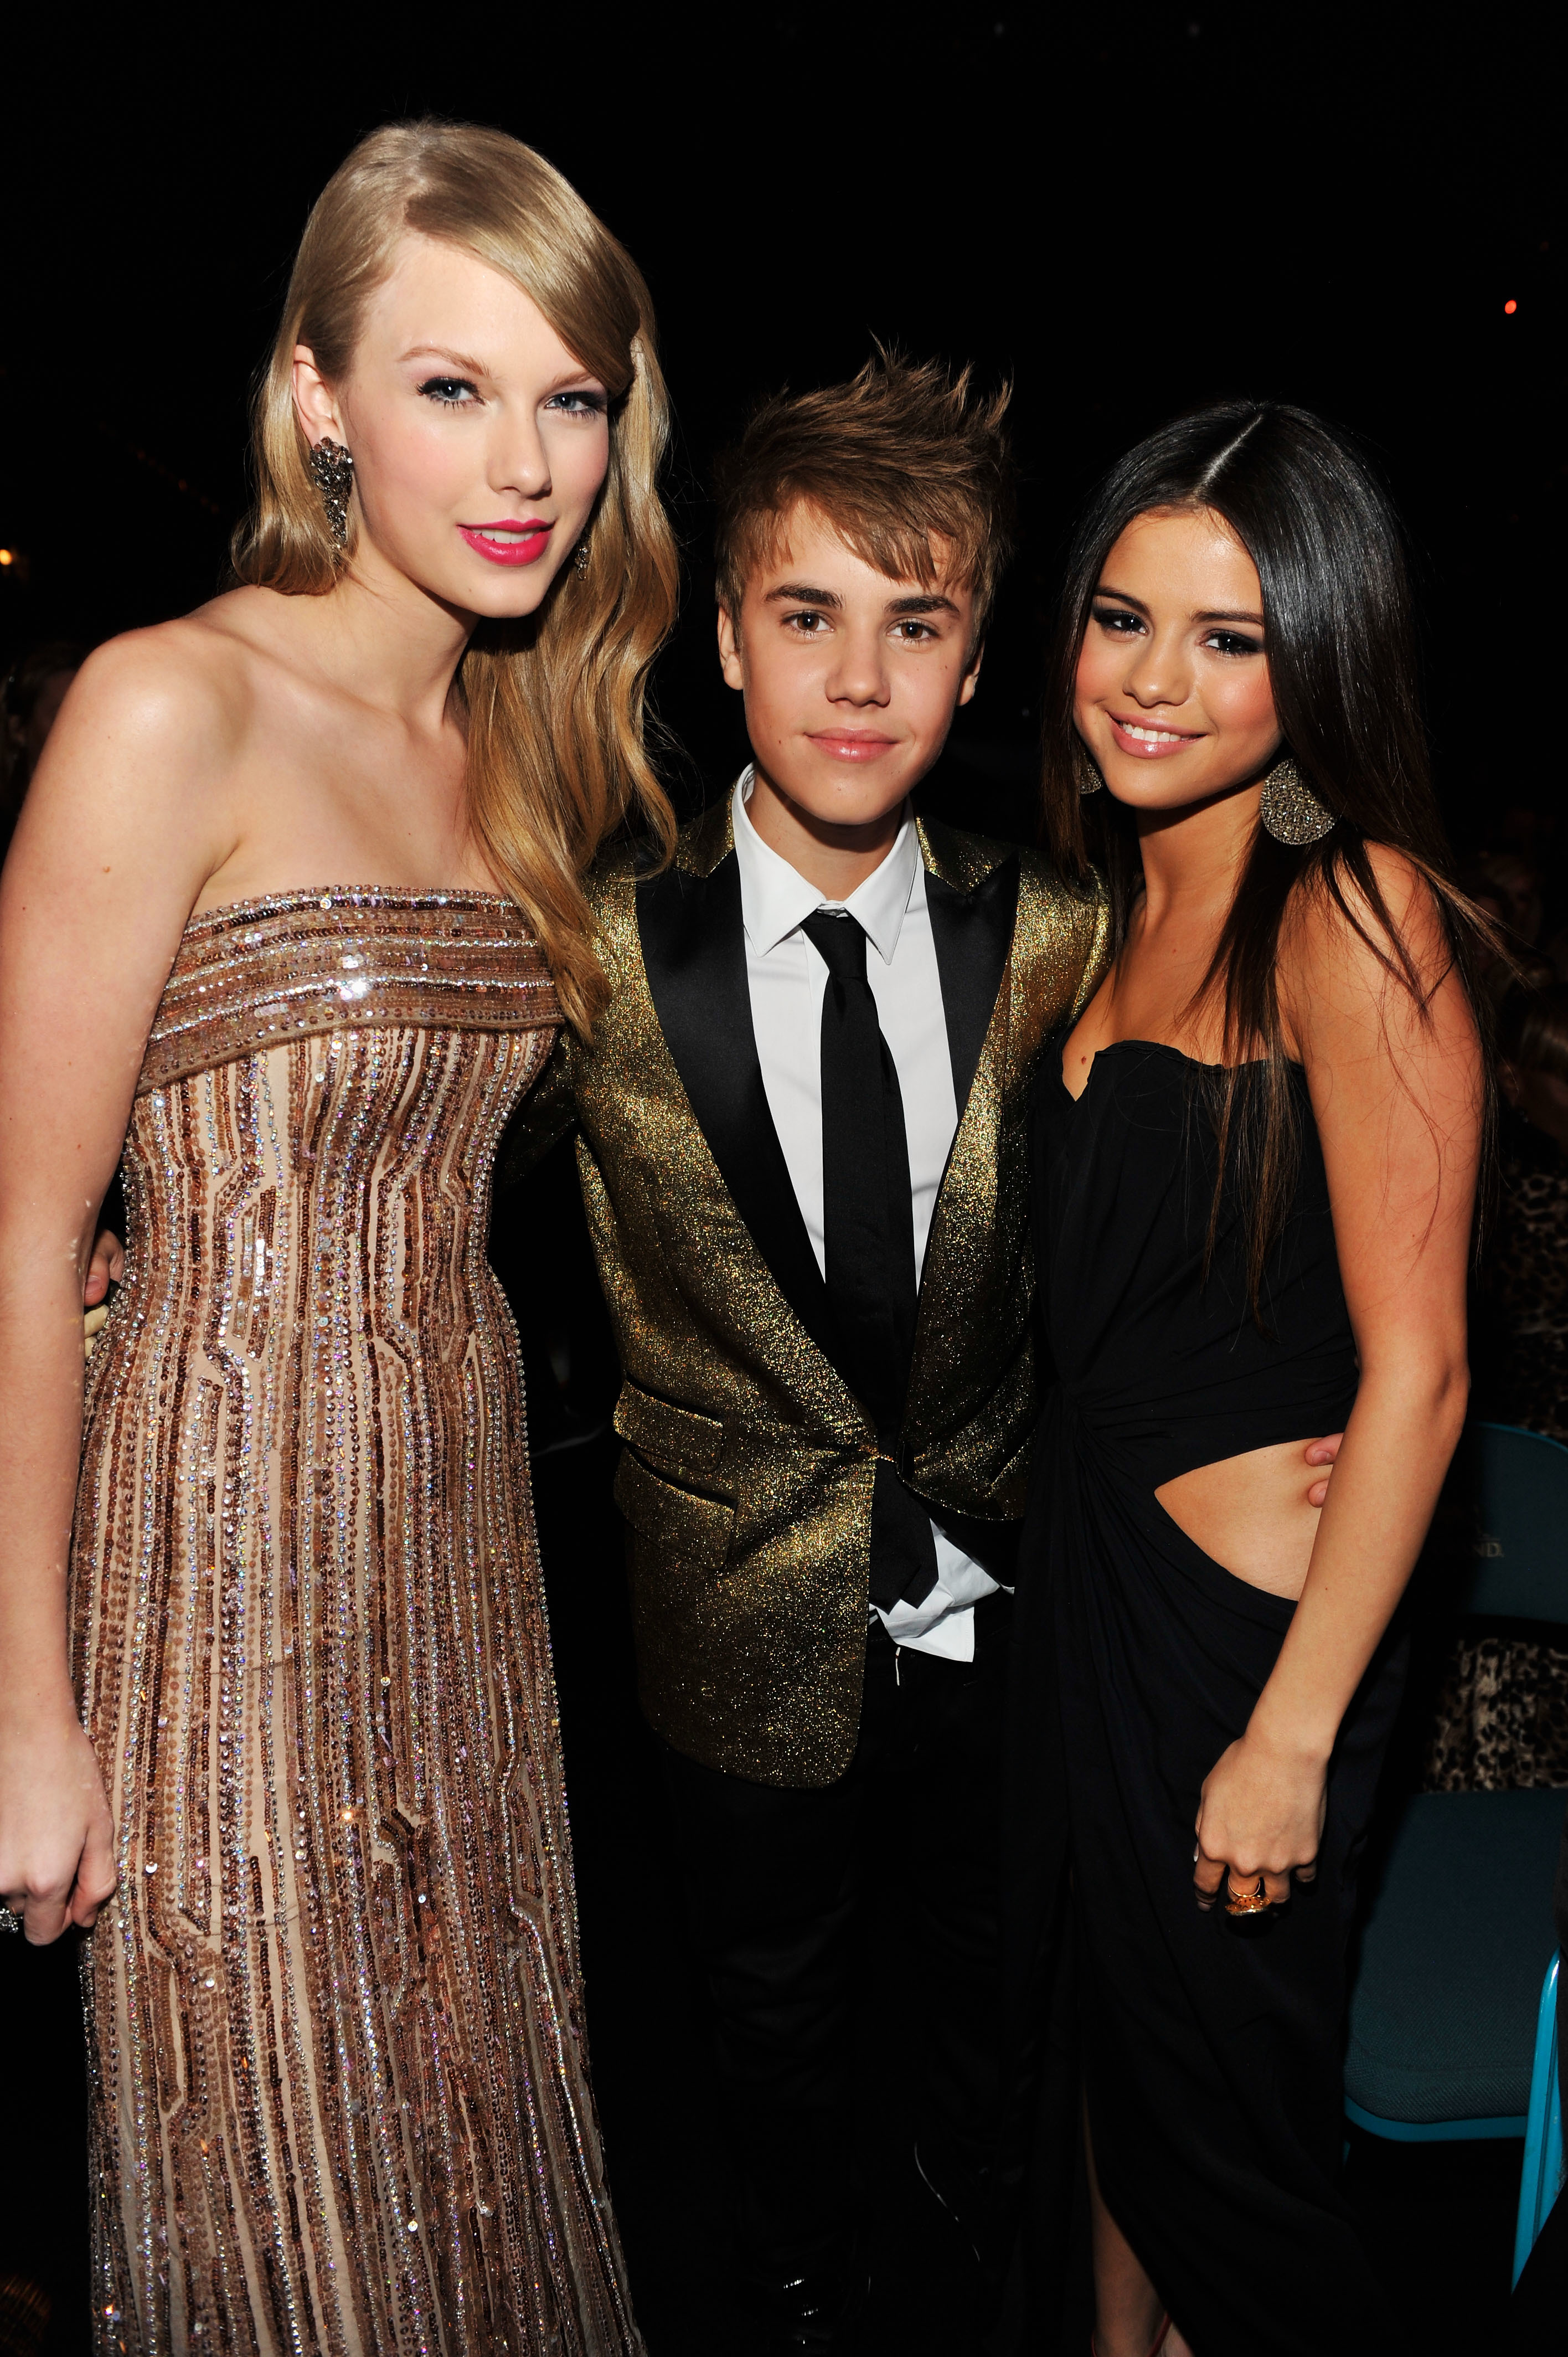 Looks like Justin Bieber and Taylor Swift are back on good terms